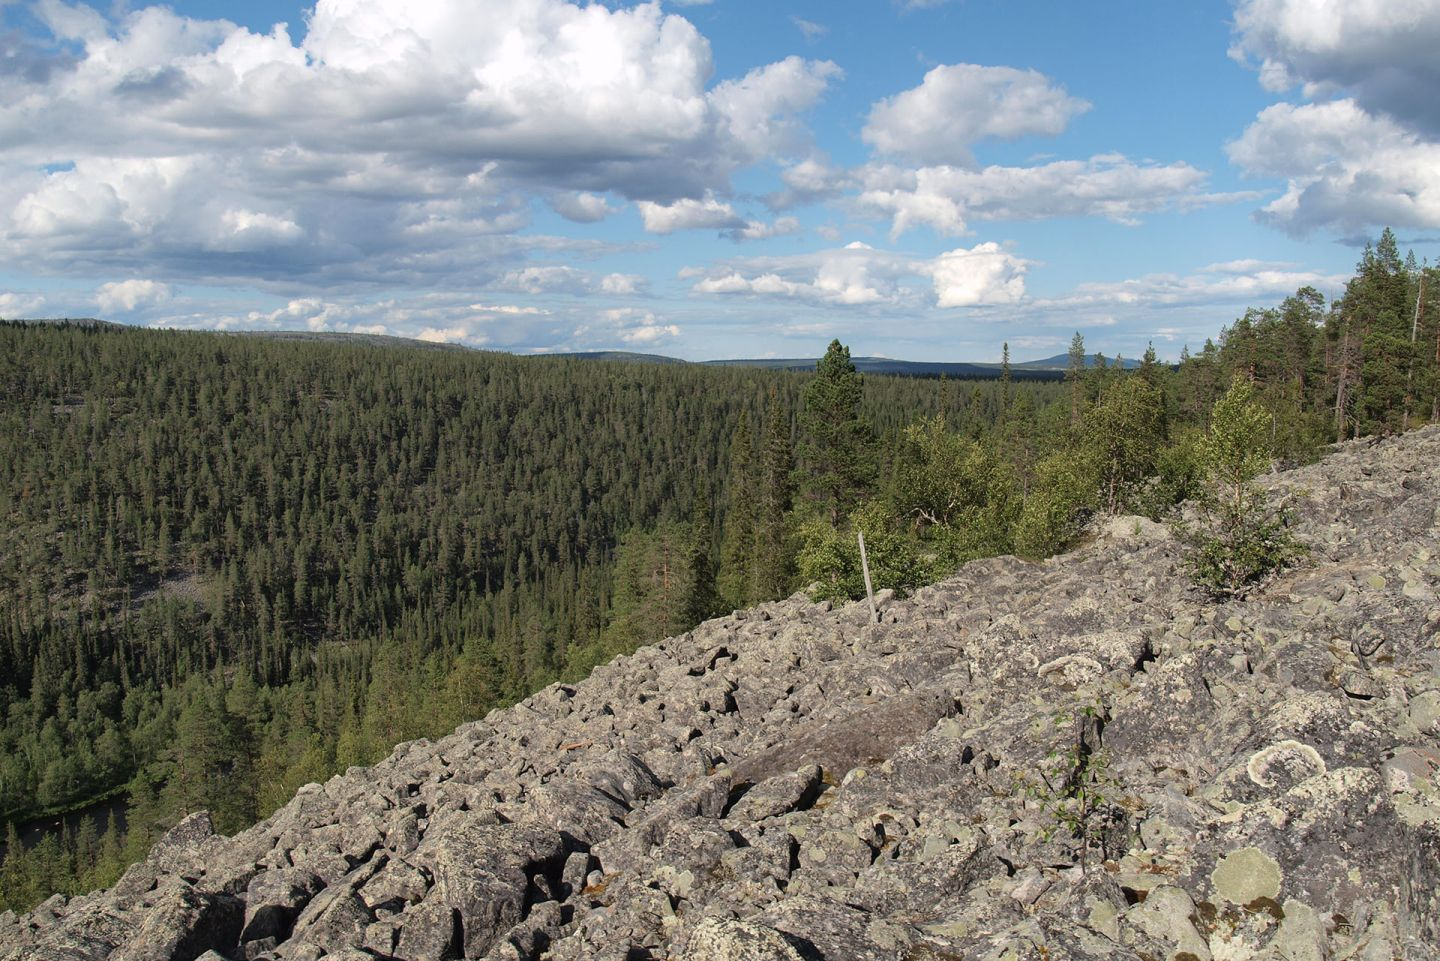 stone field and coniferous forest in Savukoski, Finland